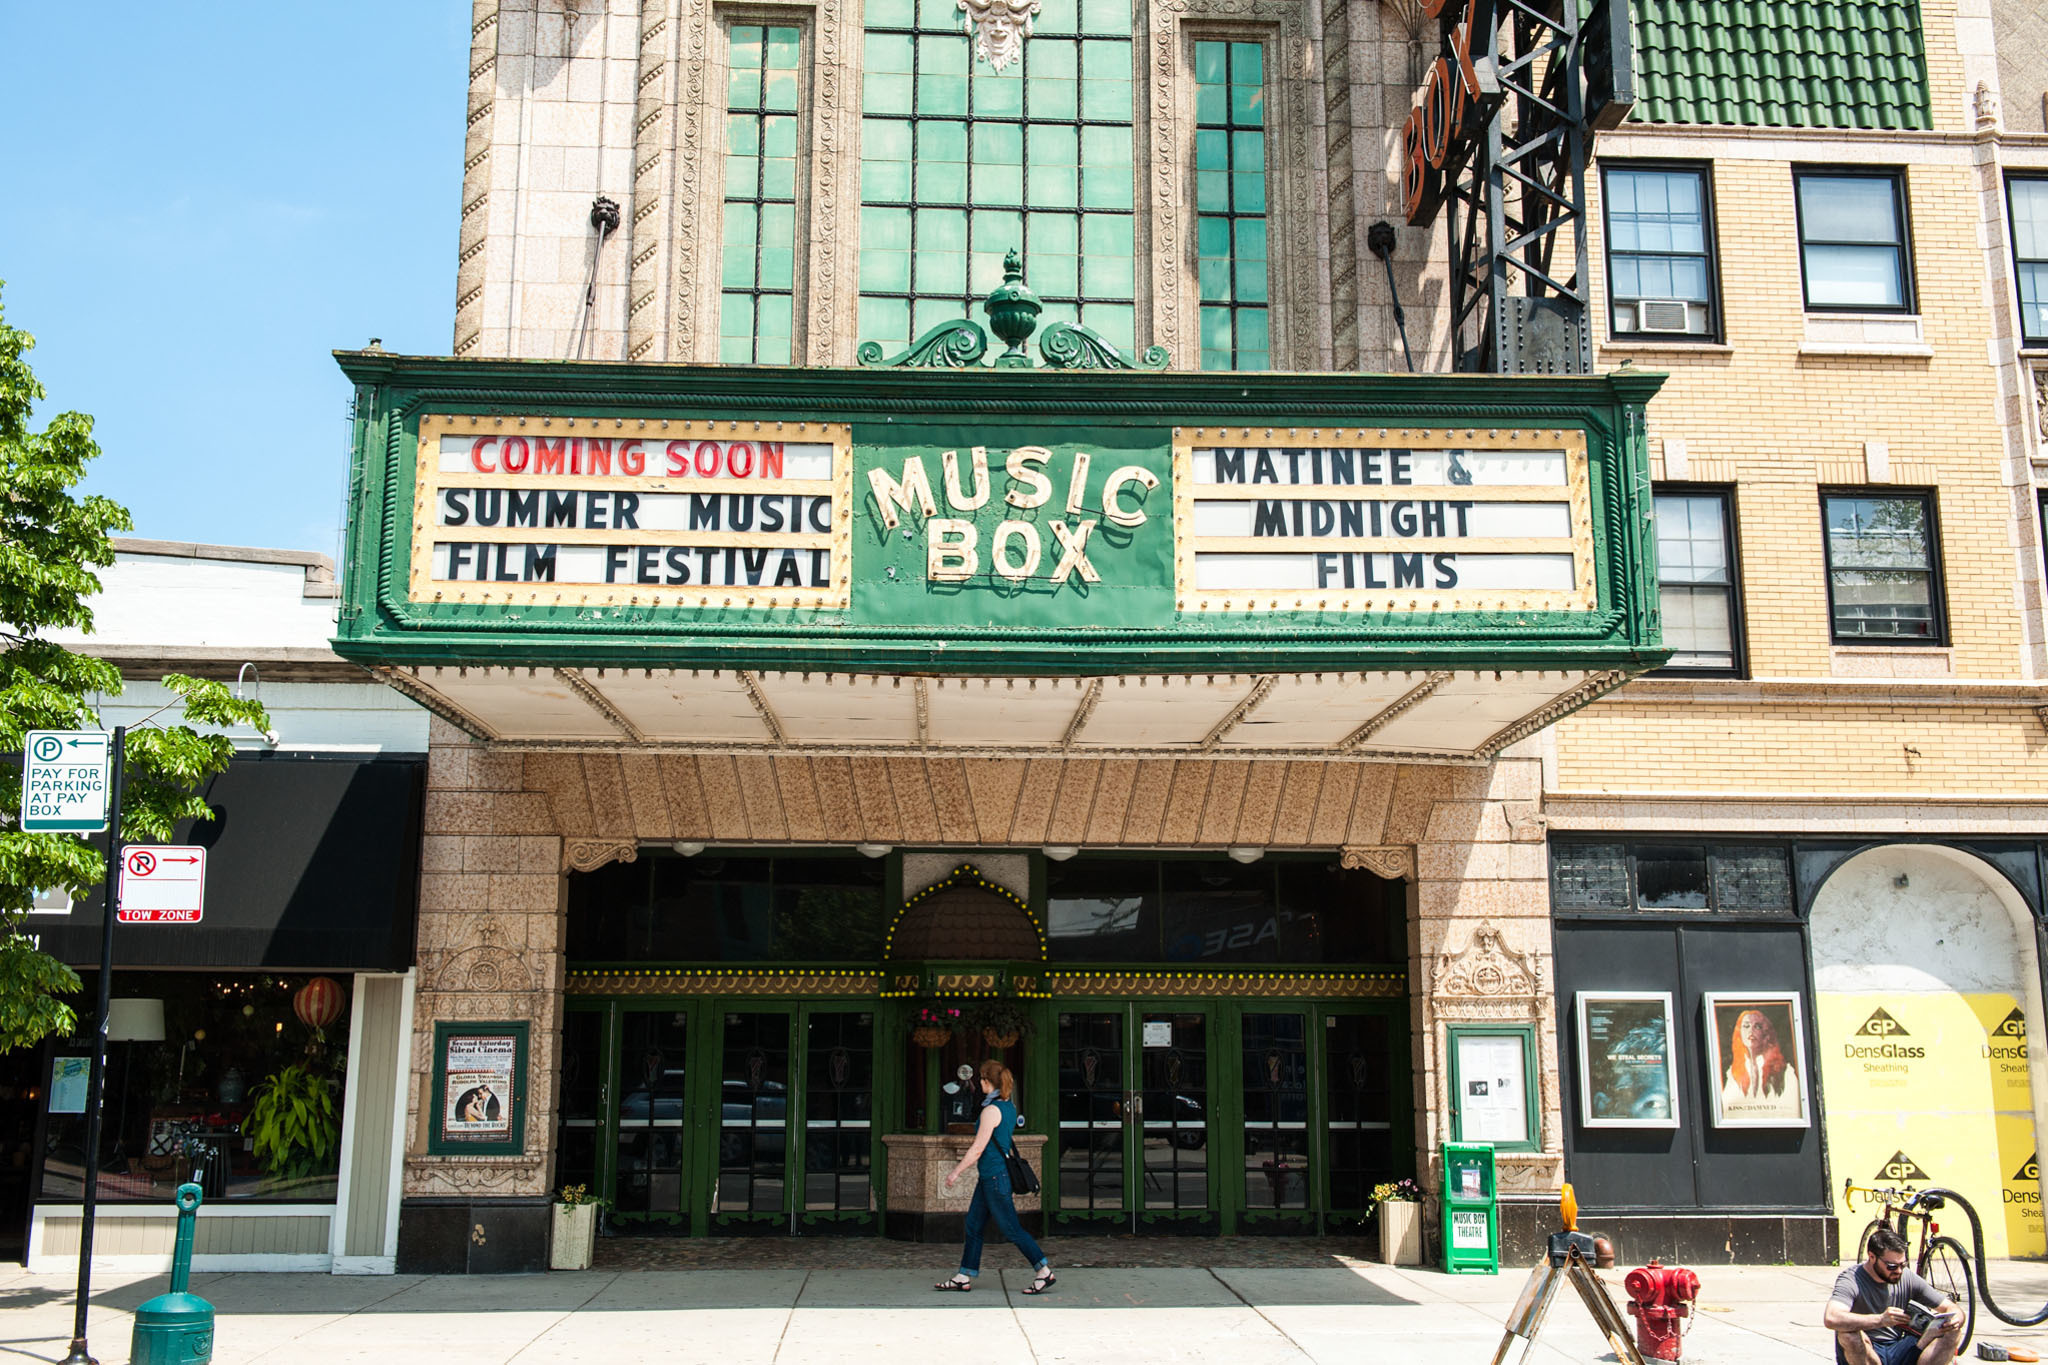 The Music Box Theatre is reopening with limited capacity screenings